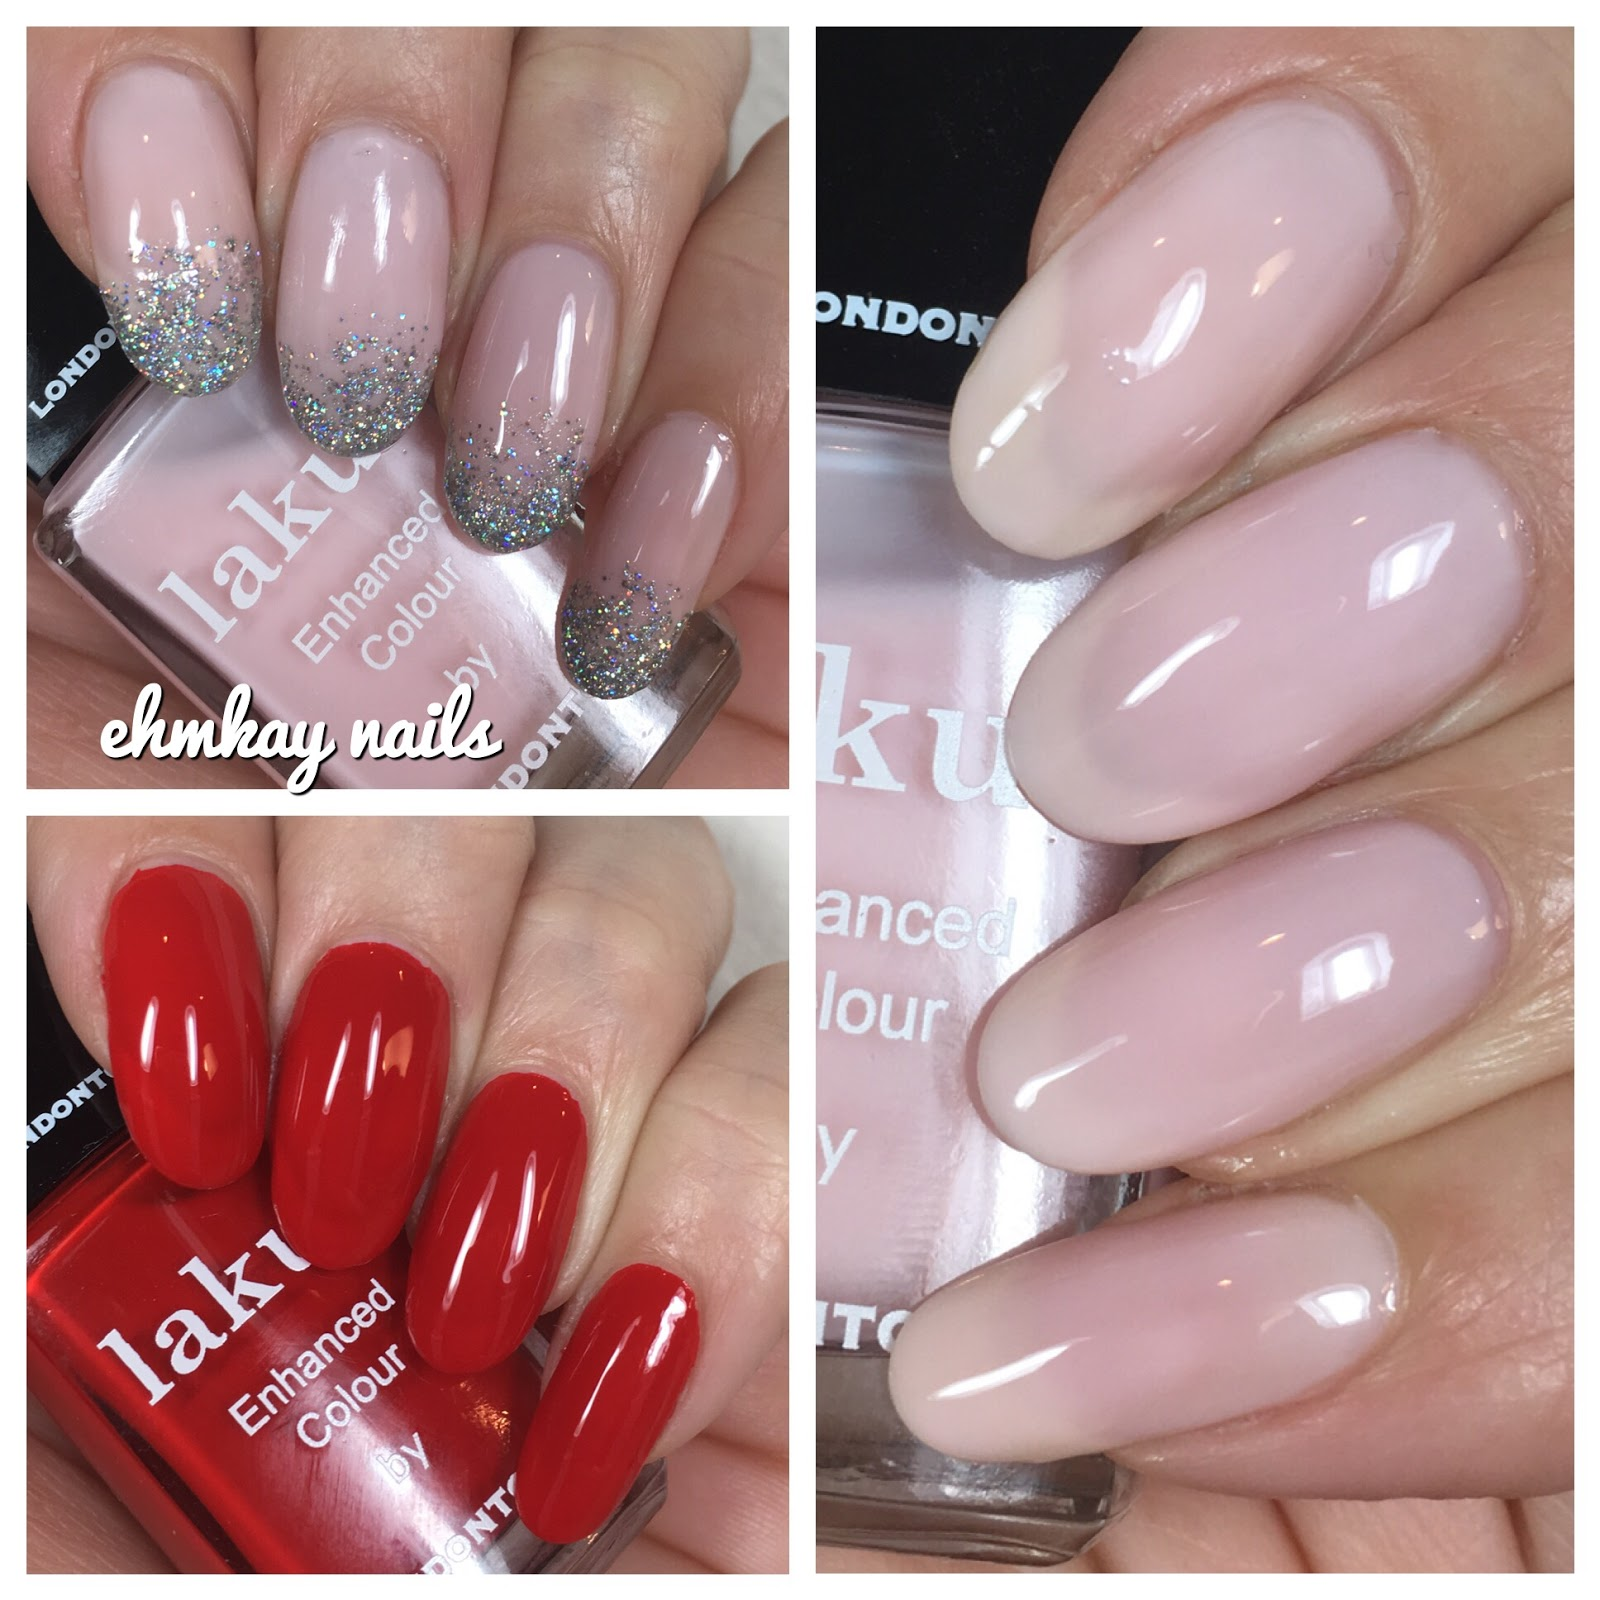 ehmkay nails: Londontown Londoner Love, Invisible Crown, and Smudge Fix